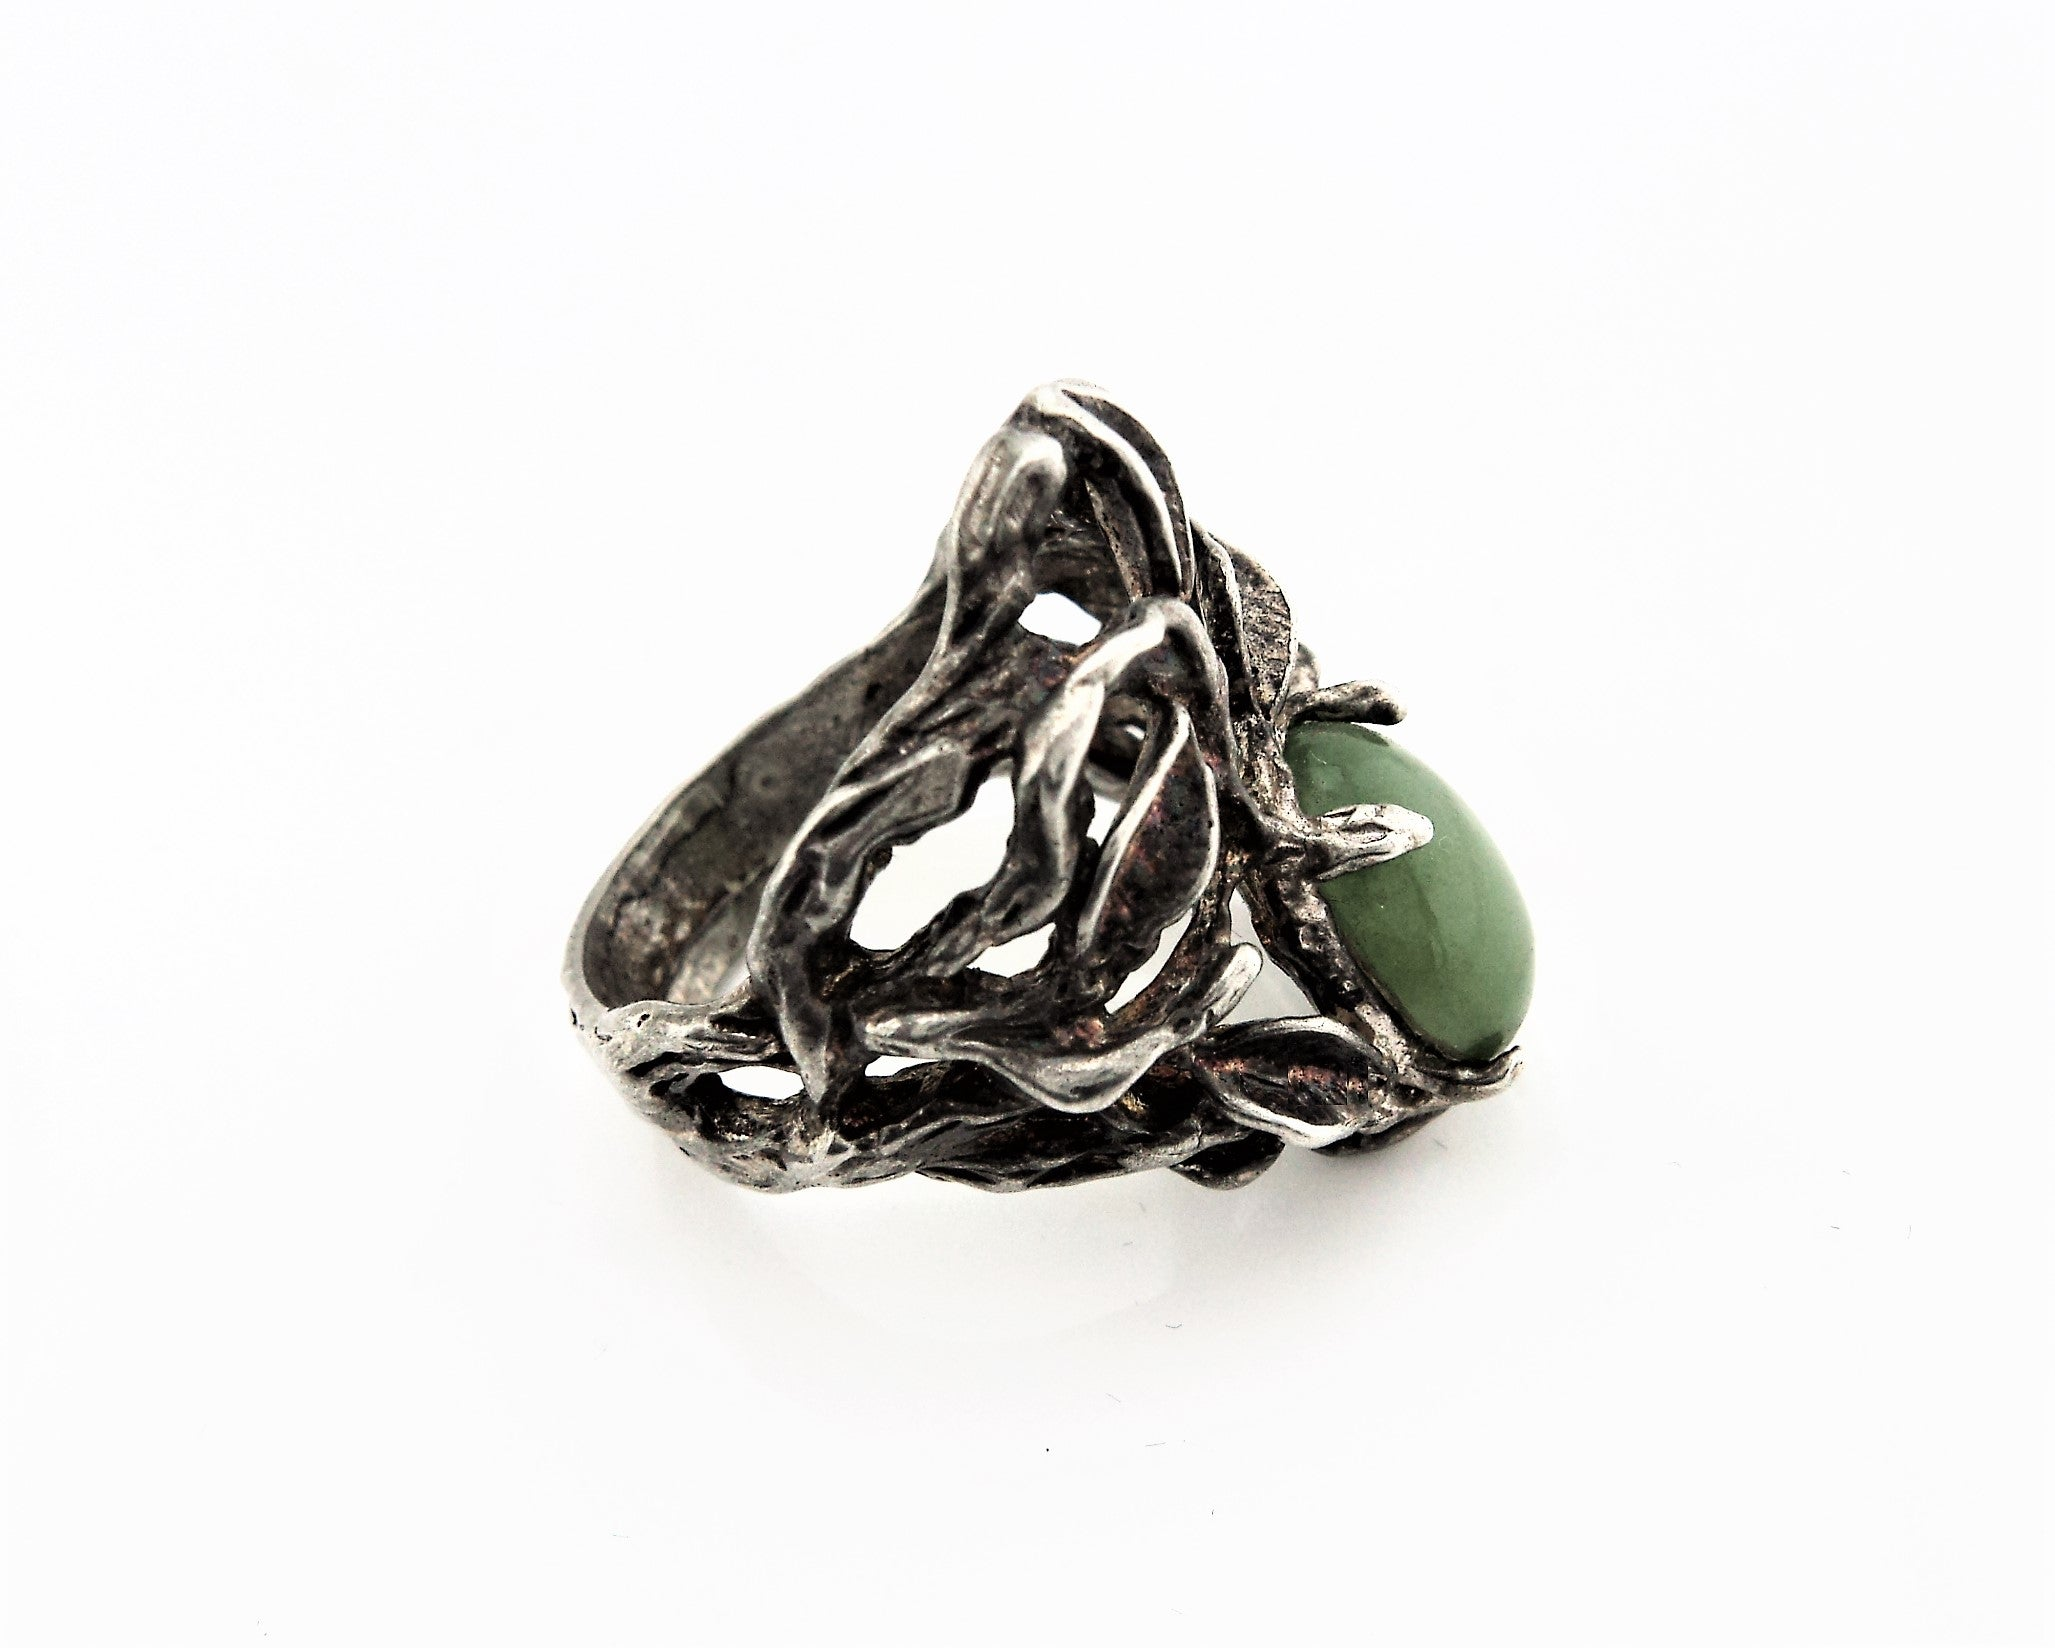 Sand Cast Sterling Silver and Jade Ring